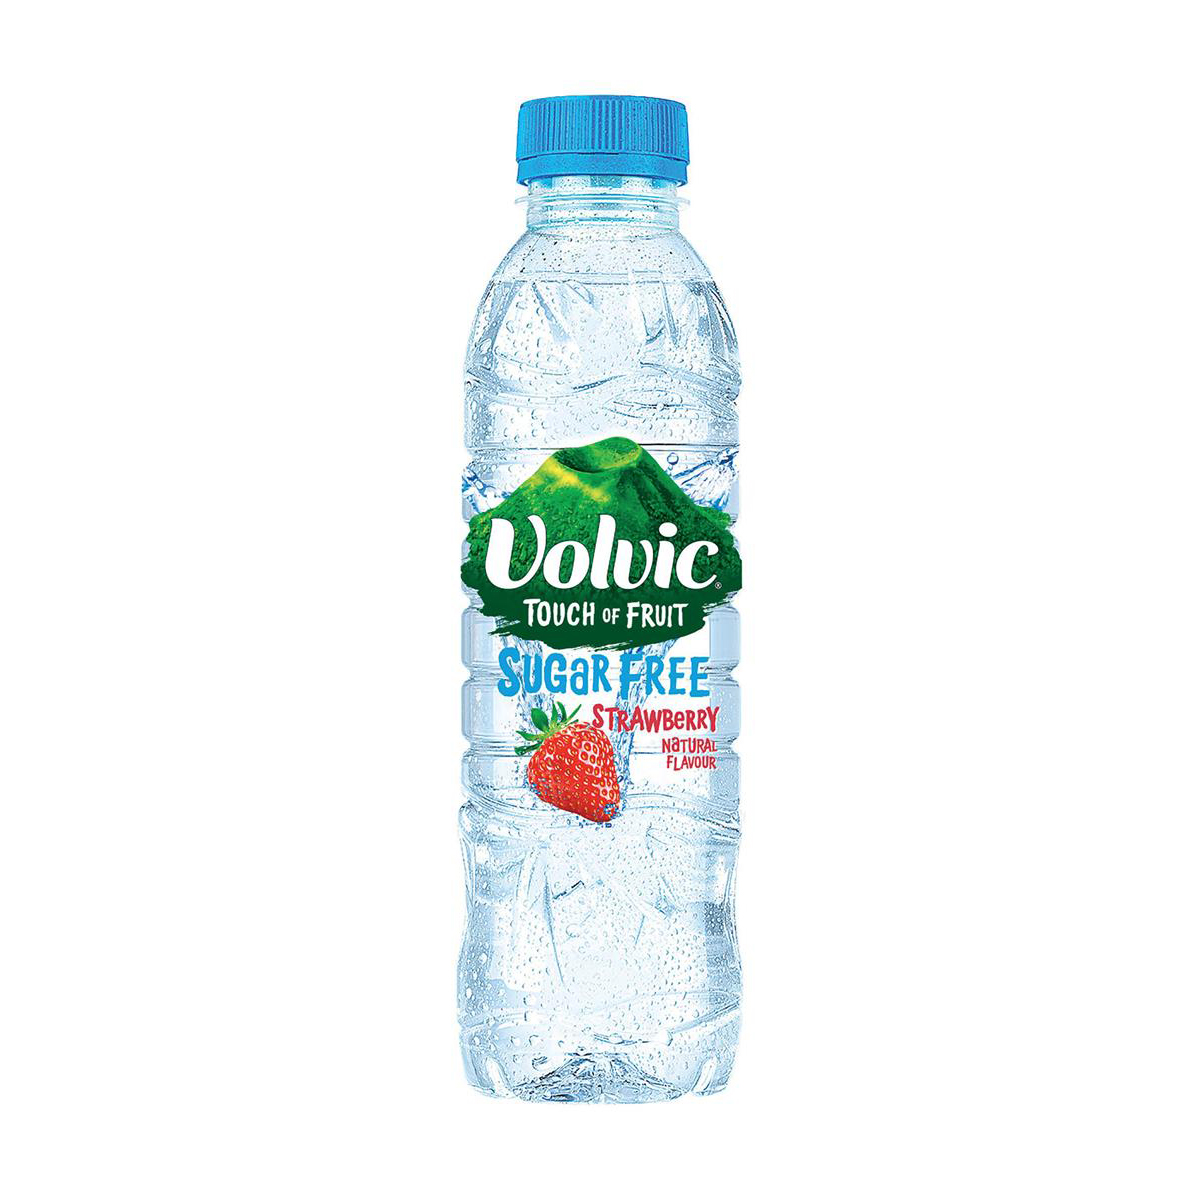 Volvic Touch of Fruit Water Sugar Free Still Bottle Strawberry 500ml Ref 122440 Pack 12